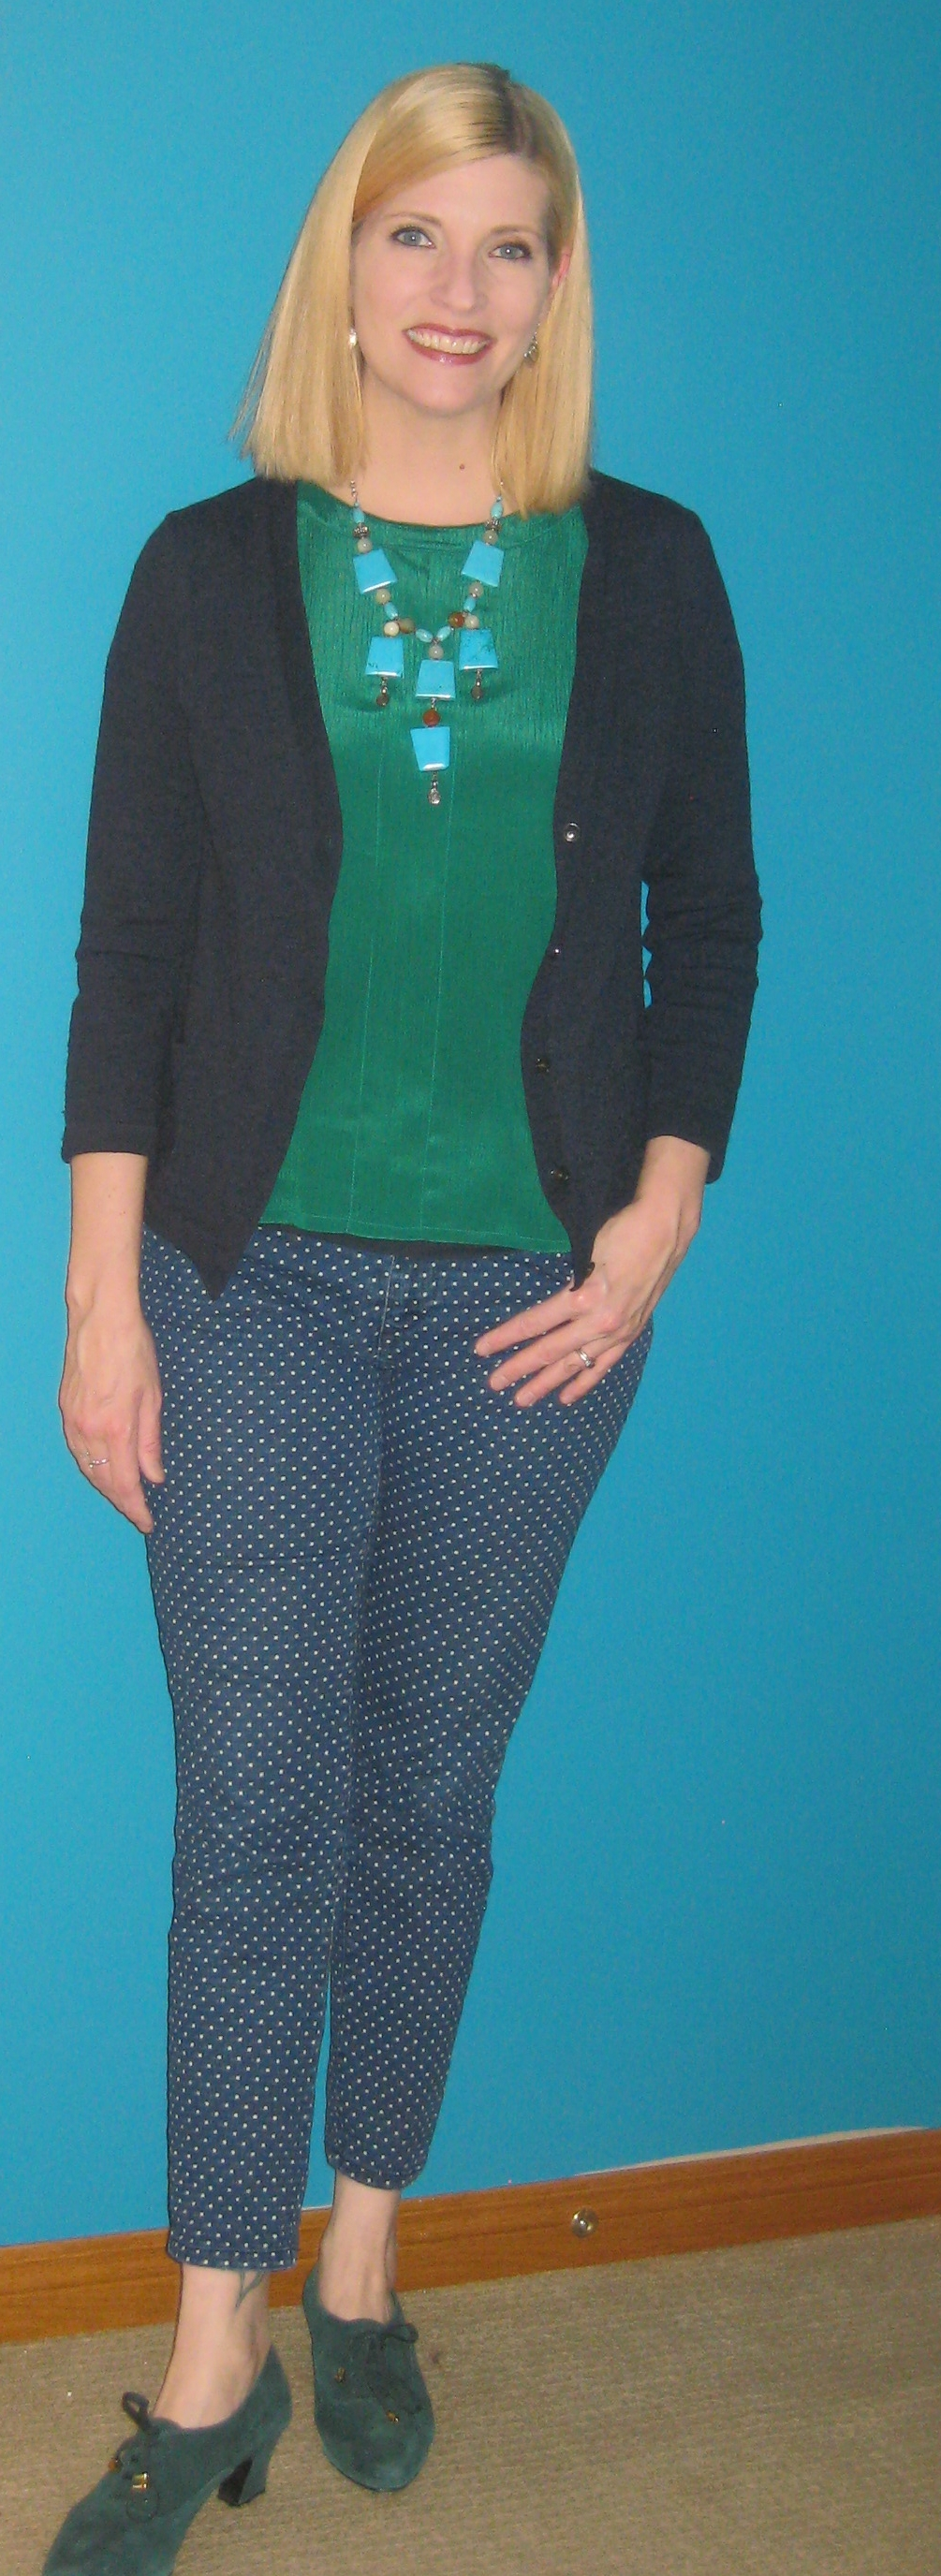 Green top $4.20, handmedown cardi, polka dot jeans $6.40, green suede vintage shoes $14.25